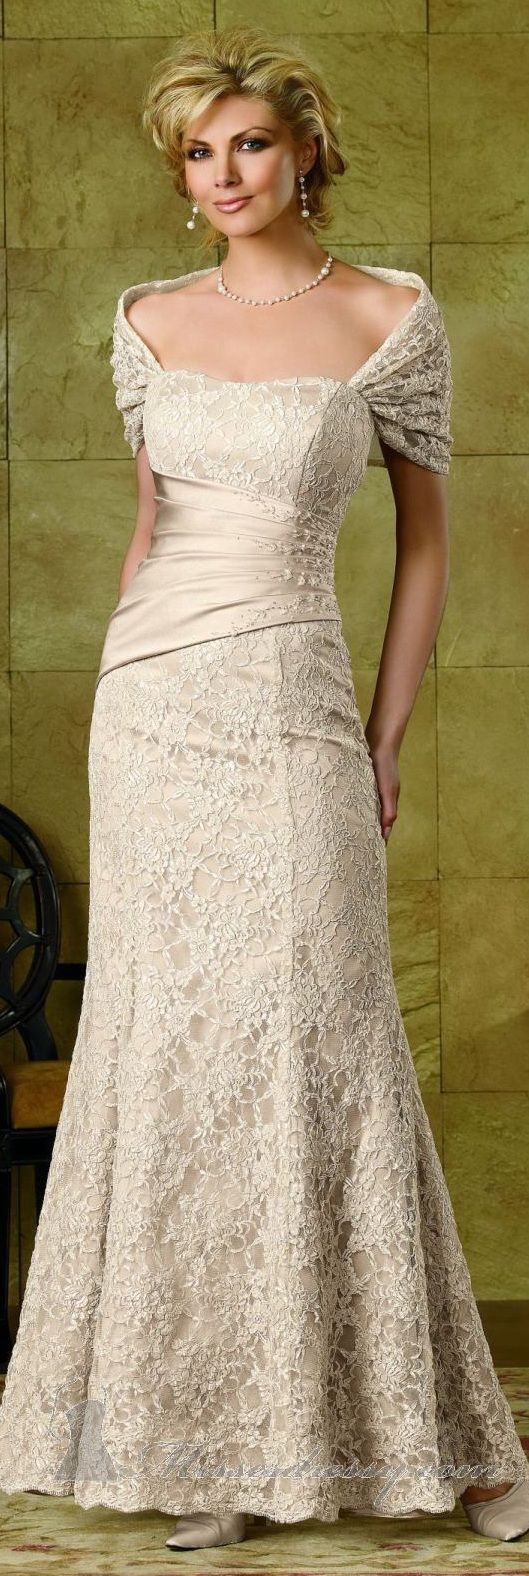 Jordan collection high couture ~ Would be lovely for the more mature bride...love love love the neckline!